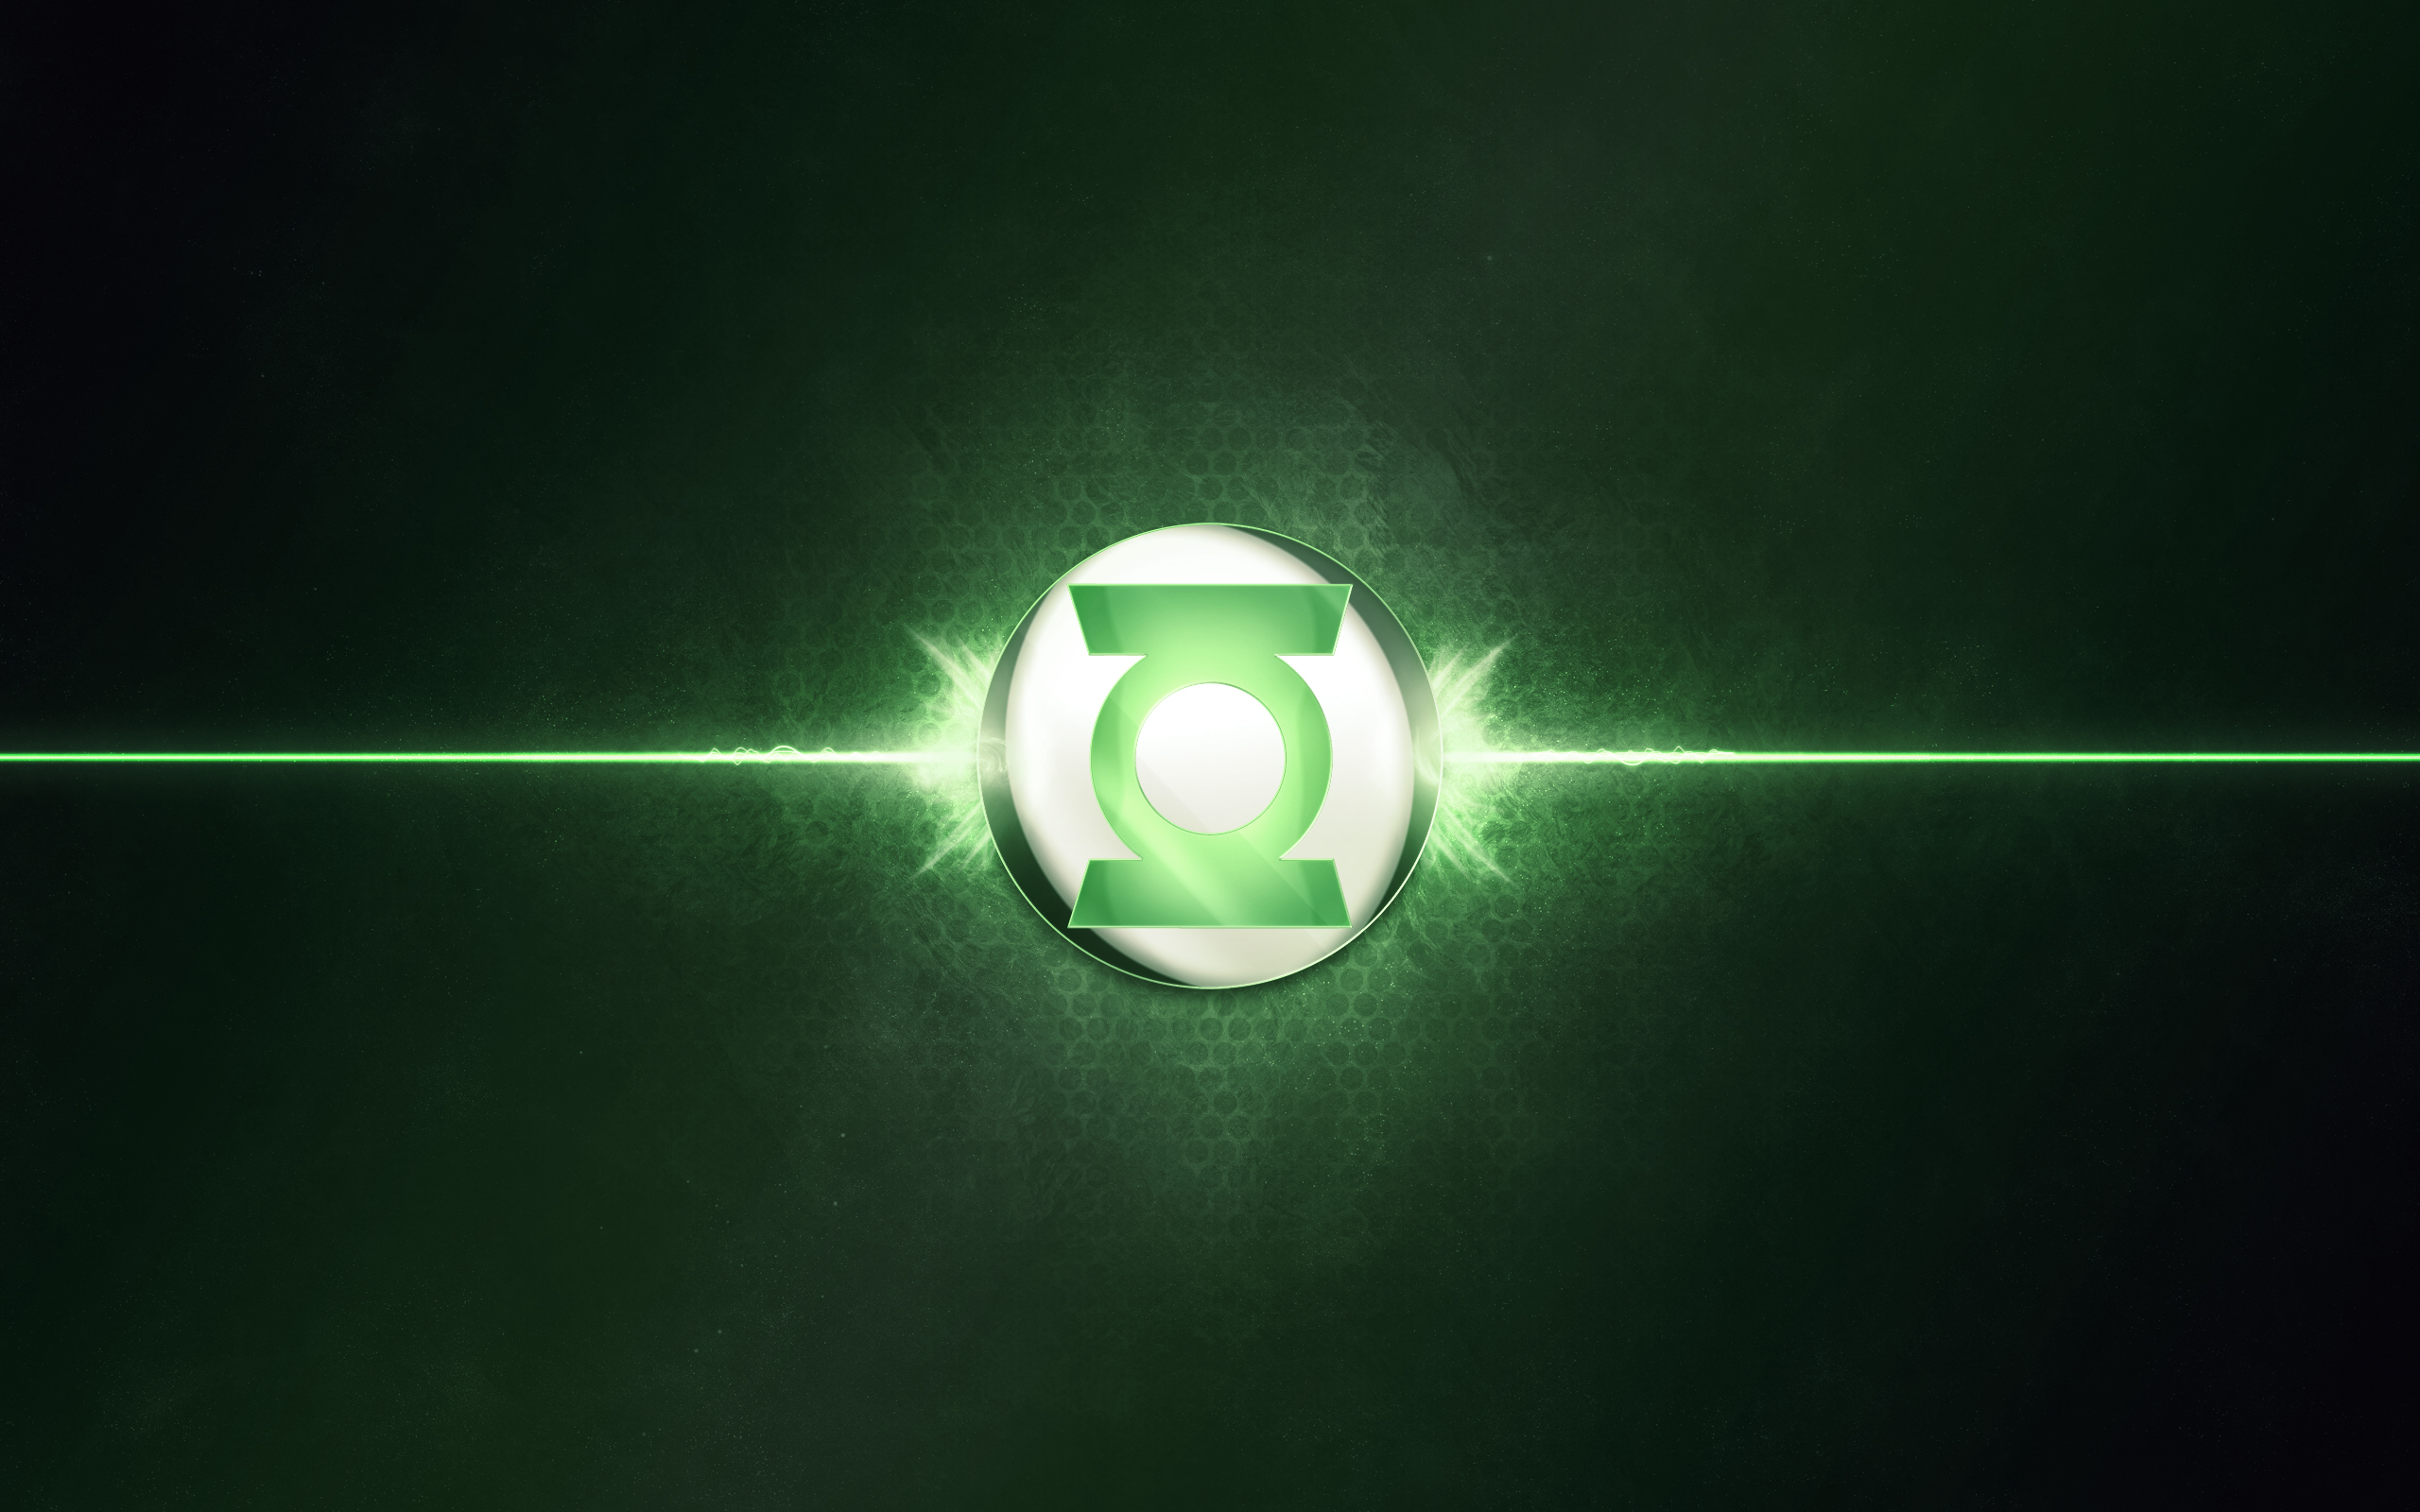 Green Lantern 171 Awesome Wallpapers 2560x1600